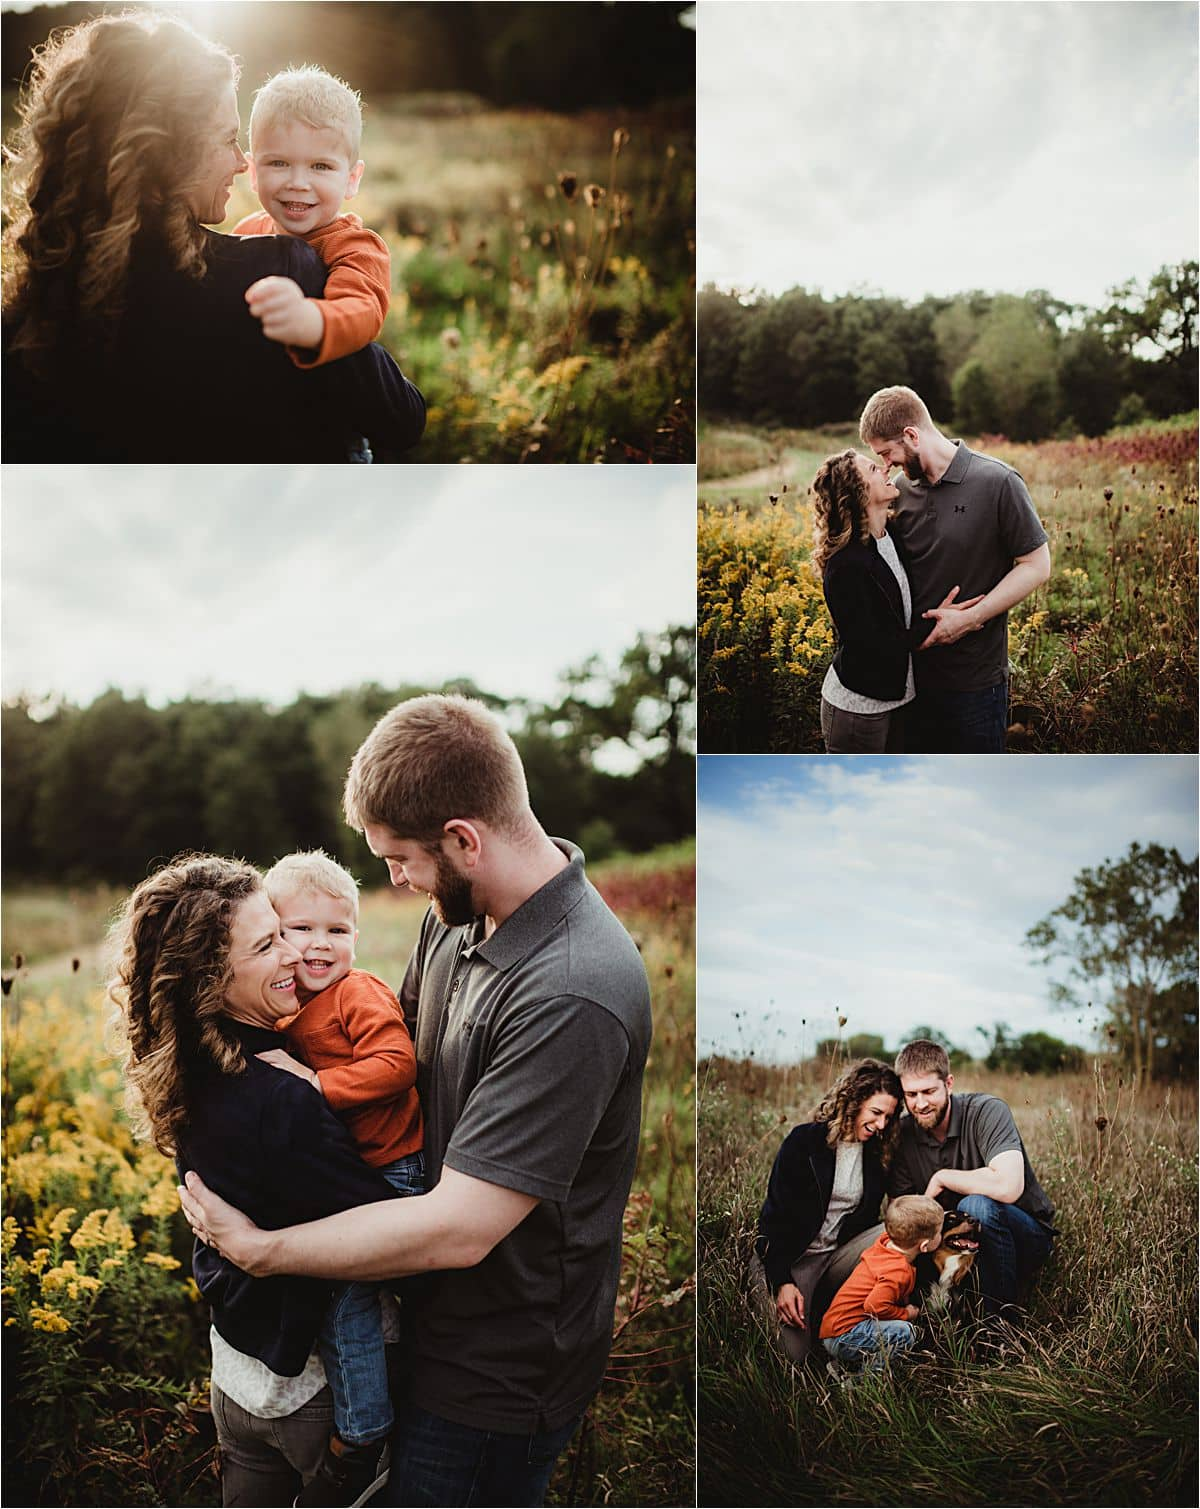 Collage of Family in Field